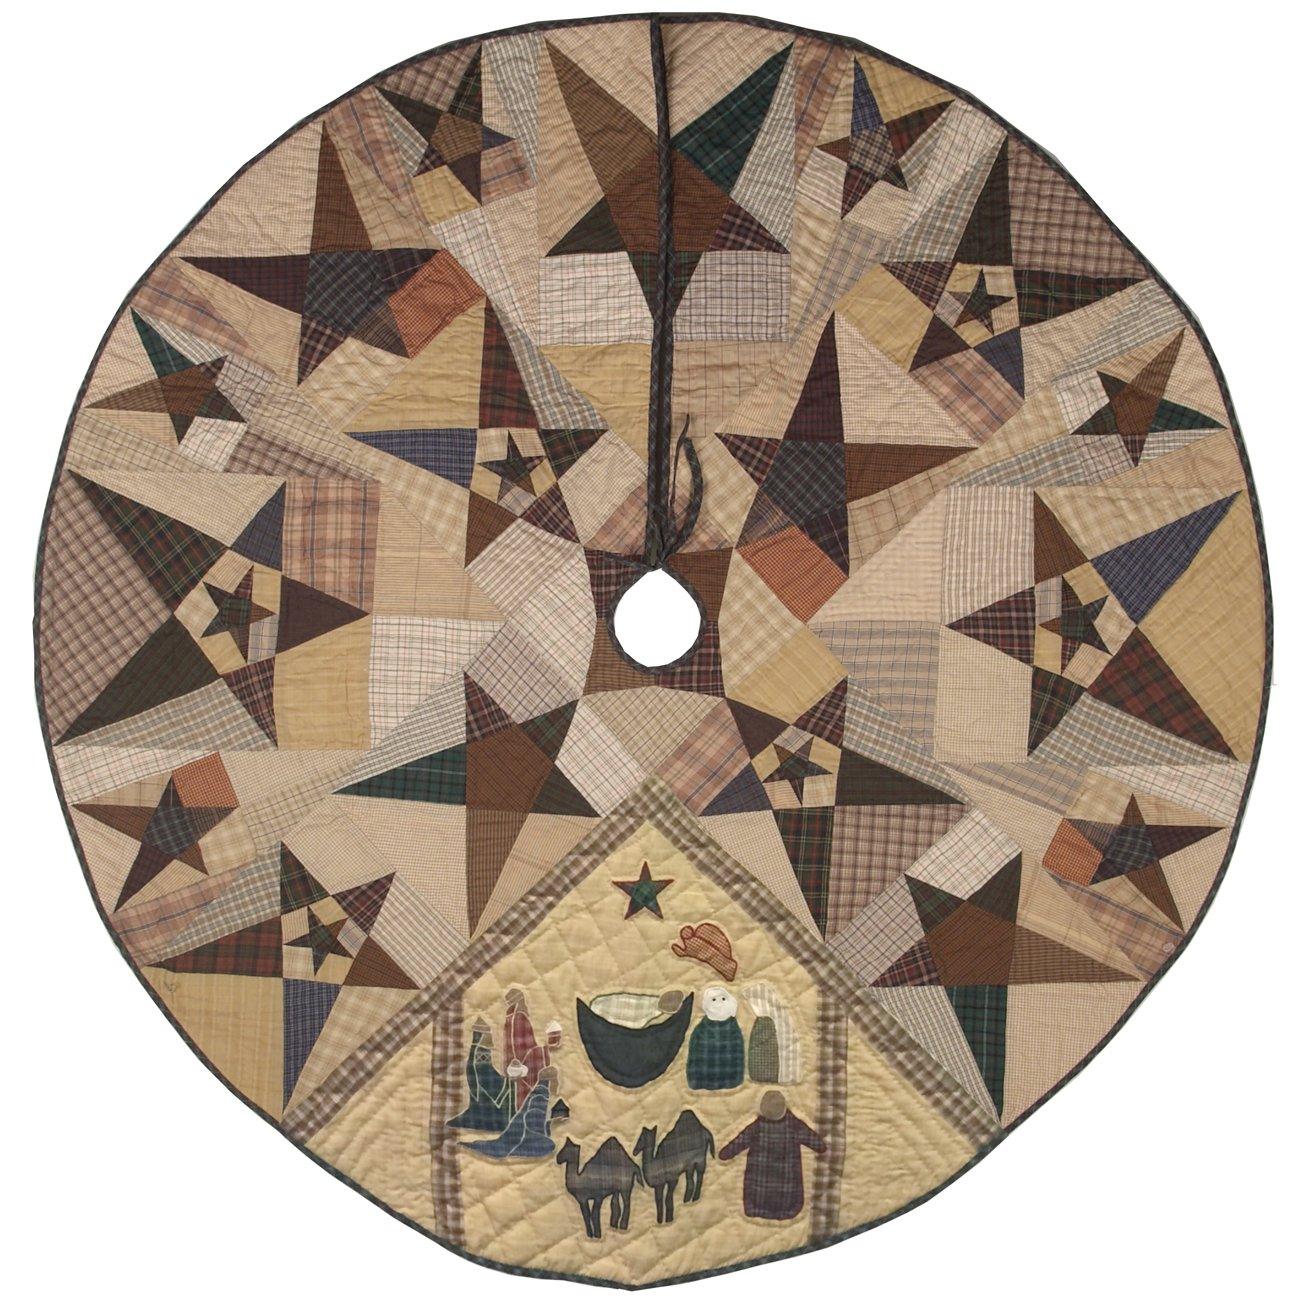 Primitive Star with Nativity Quilted Christmas Tree Skirt 60 Inches Round 100% Cotton Handmade Hand Quilted Appliqued Embroidered Heirloom Quality by Choices Quilts (Image #1)